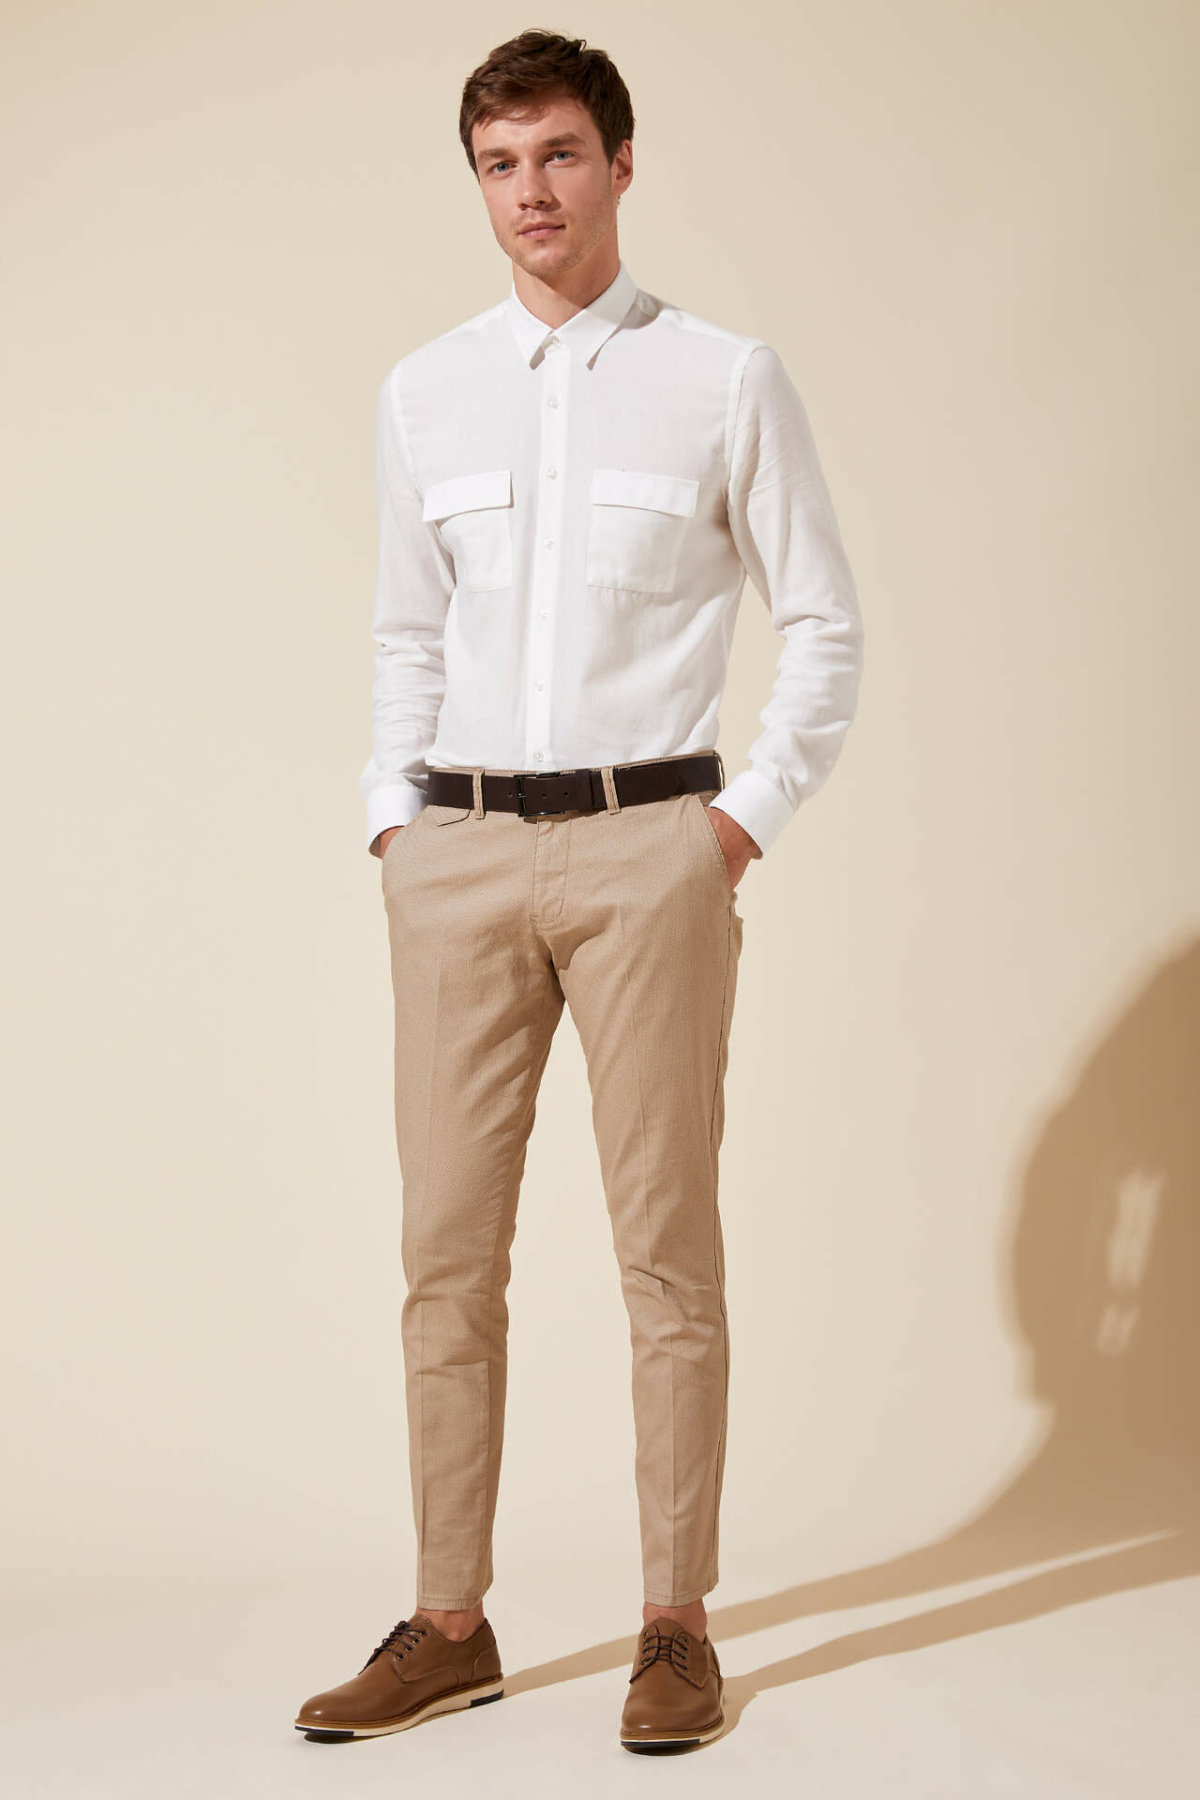 DeFacto Man Casual Smart Long Pants Men Solid Color Pencil Pants Male Mid-waist Formal Bottoms Trousers-K2888AZ19SM